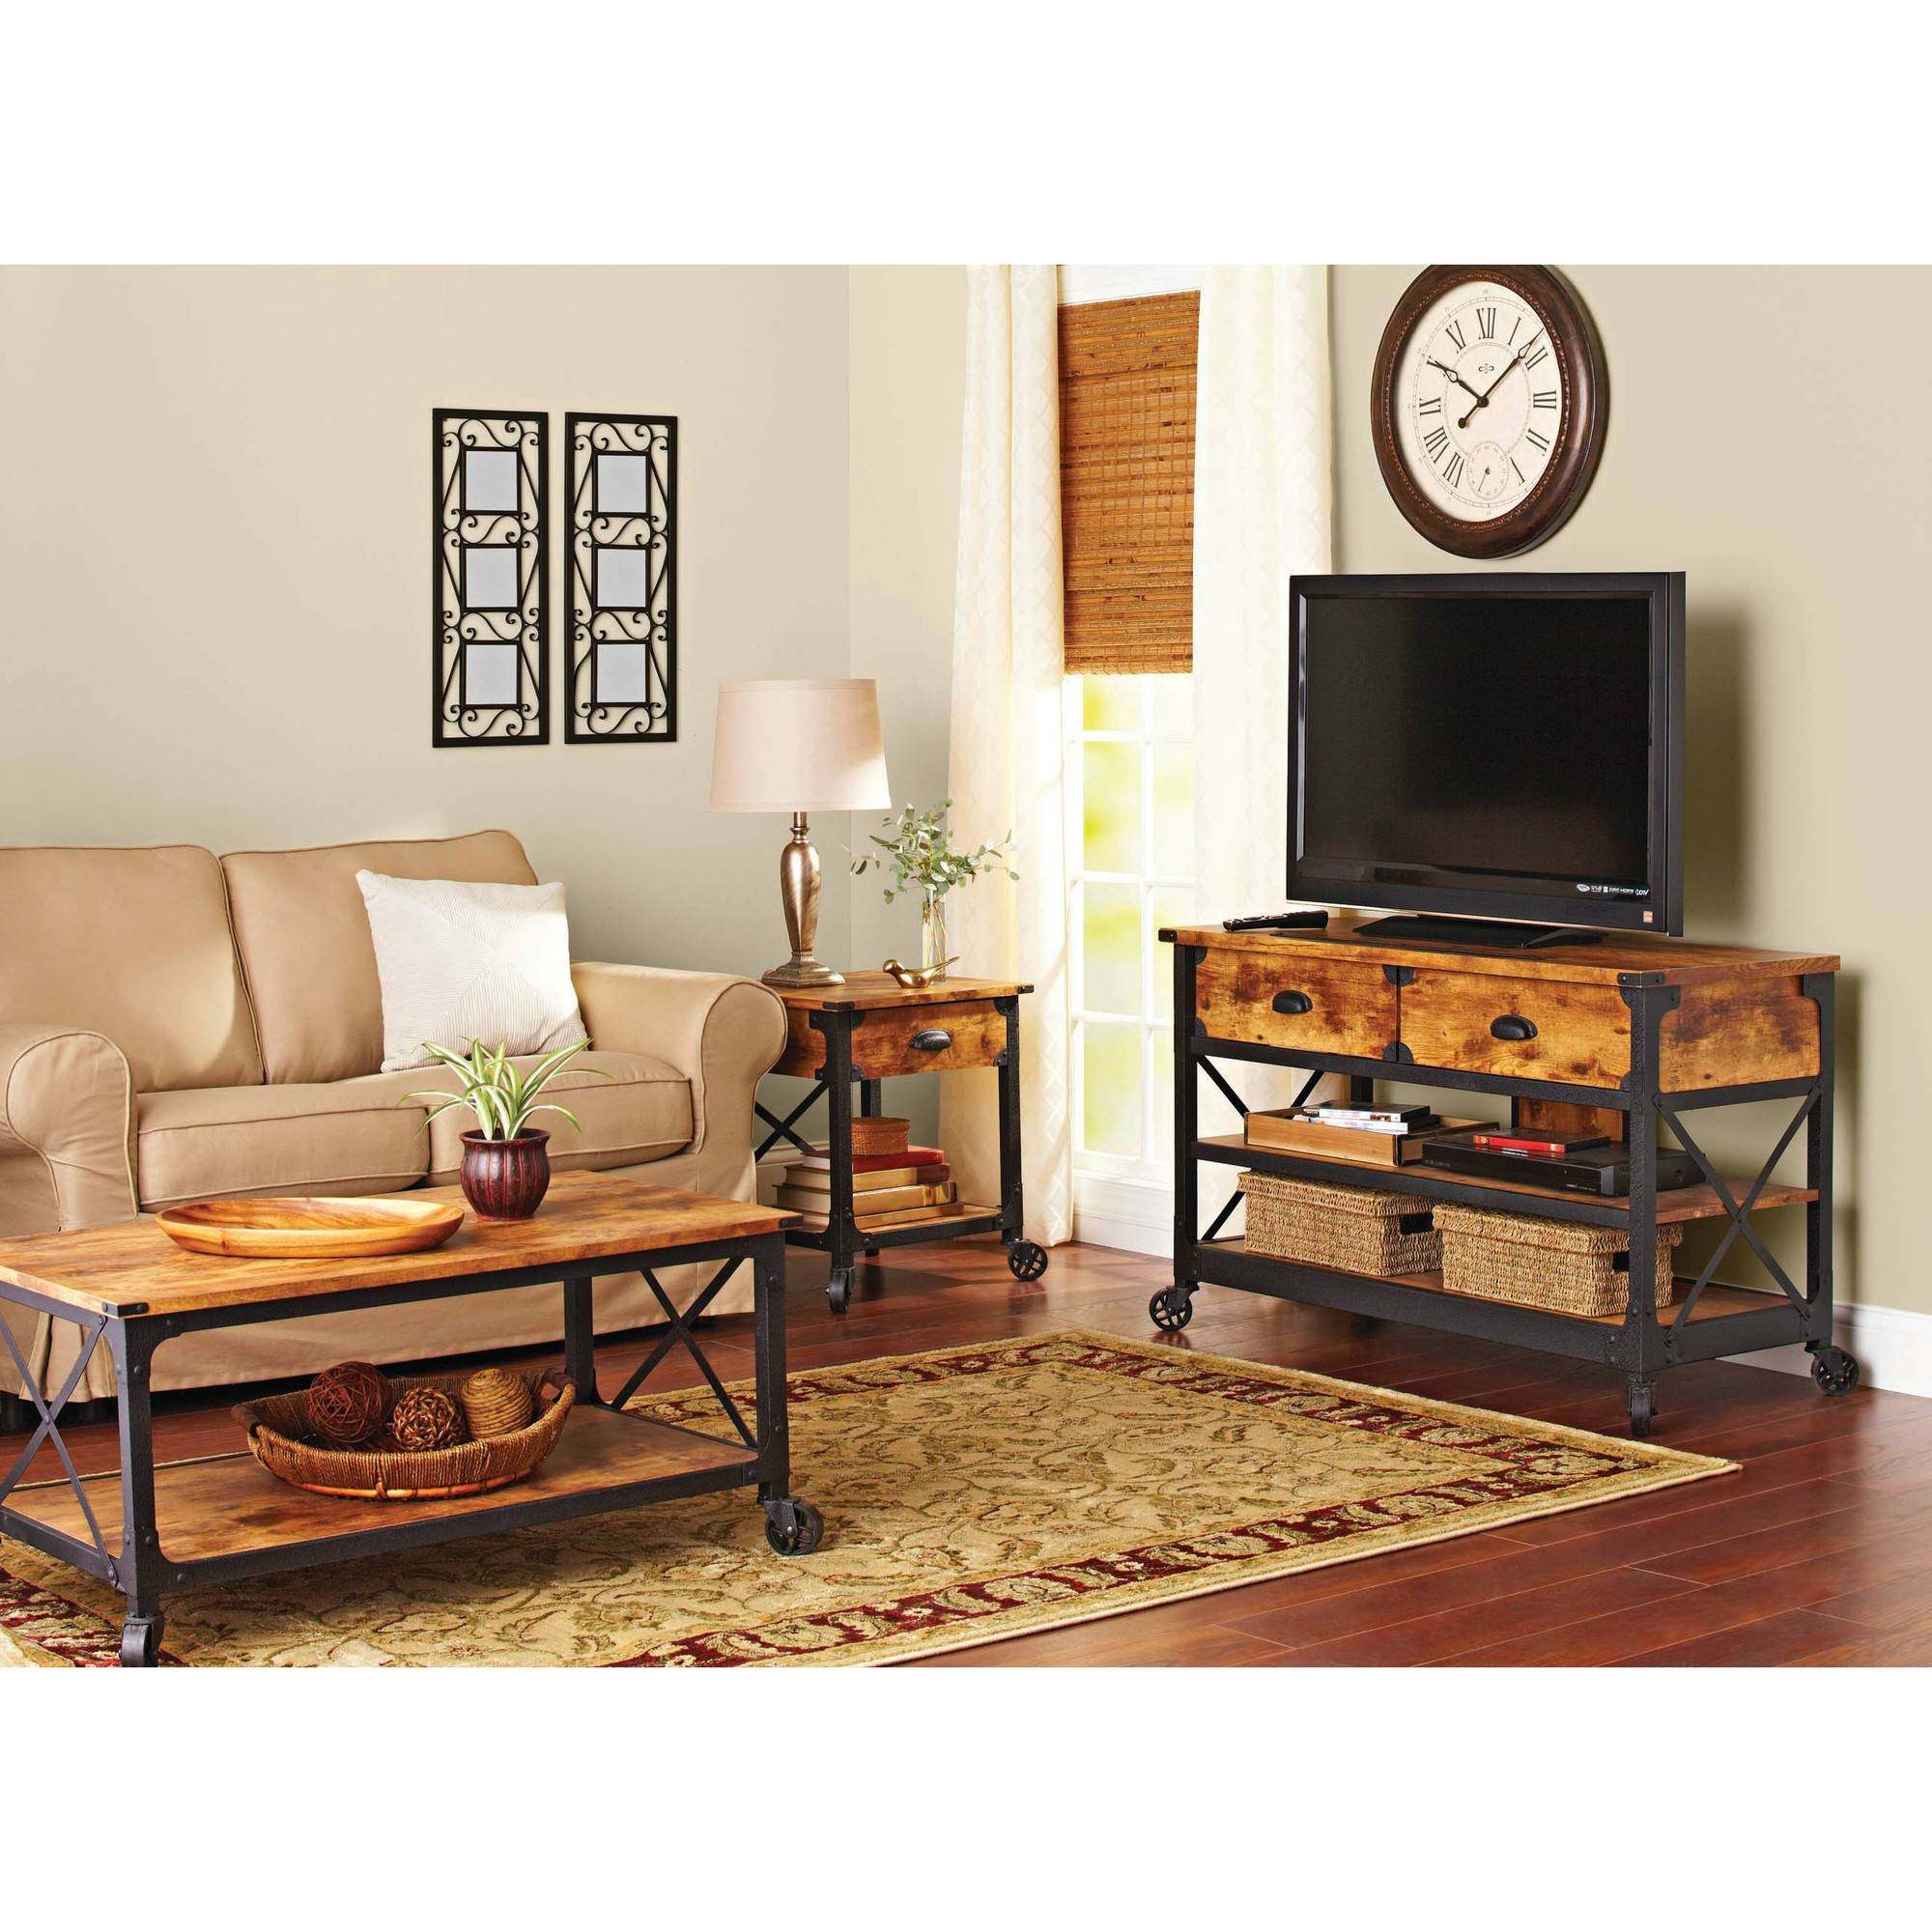 Better Homes And Gardens Rustic Country Antiqued Black/pine Panel pertaining to Rustic Coffee Table and Tv Stand (Image 4 of 15)